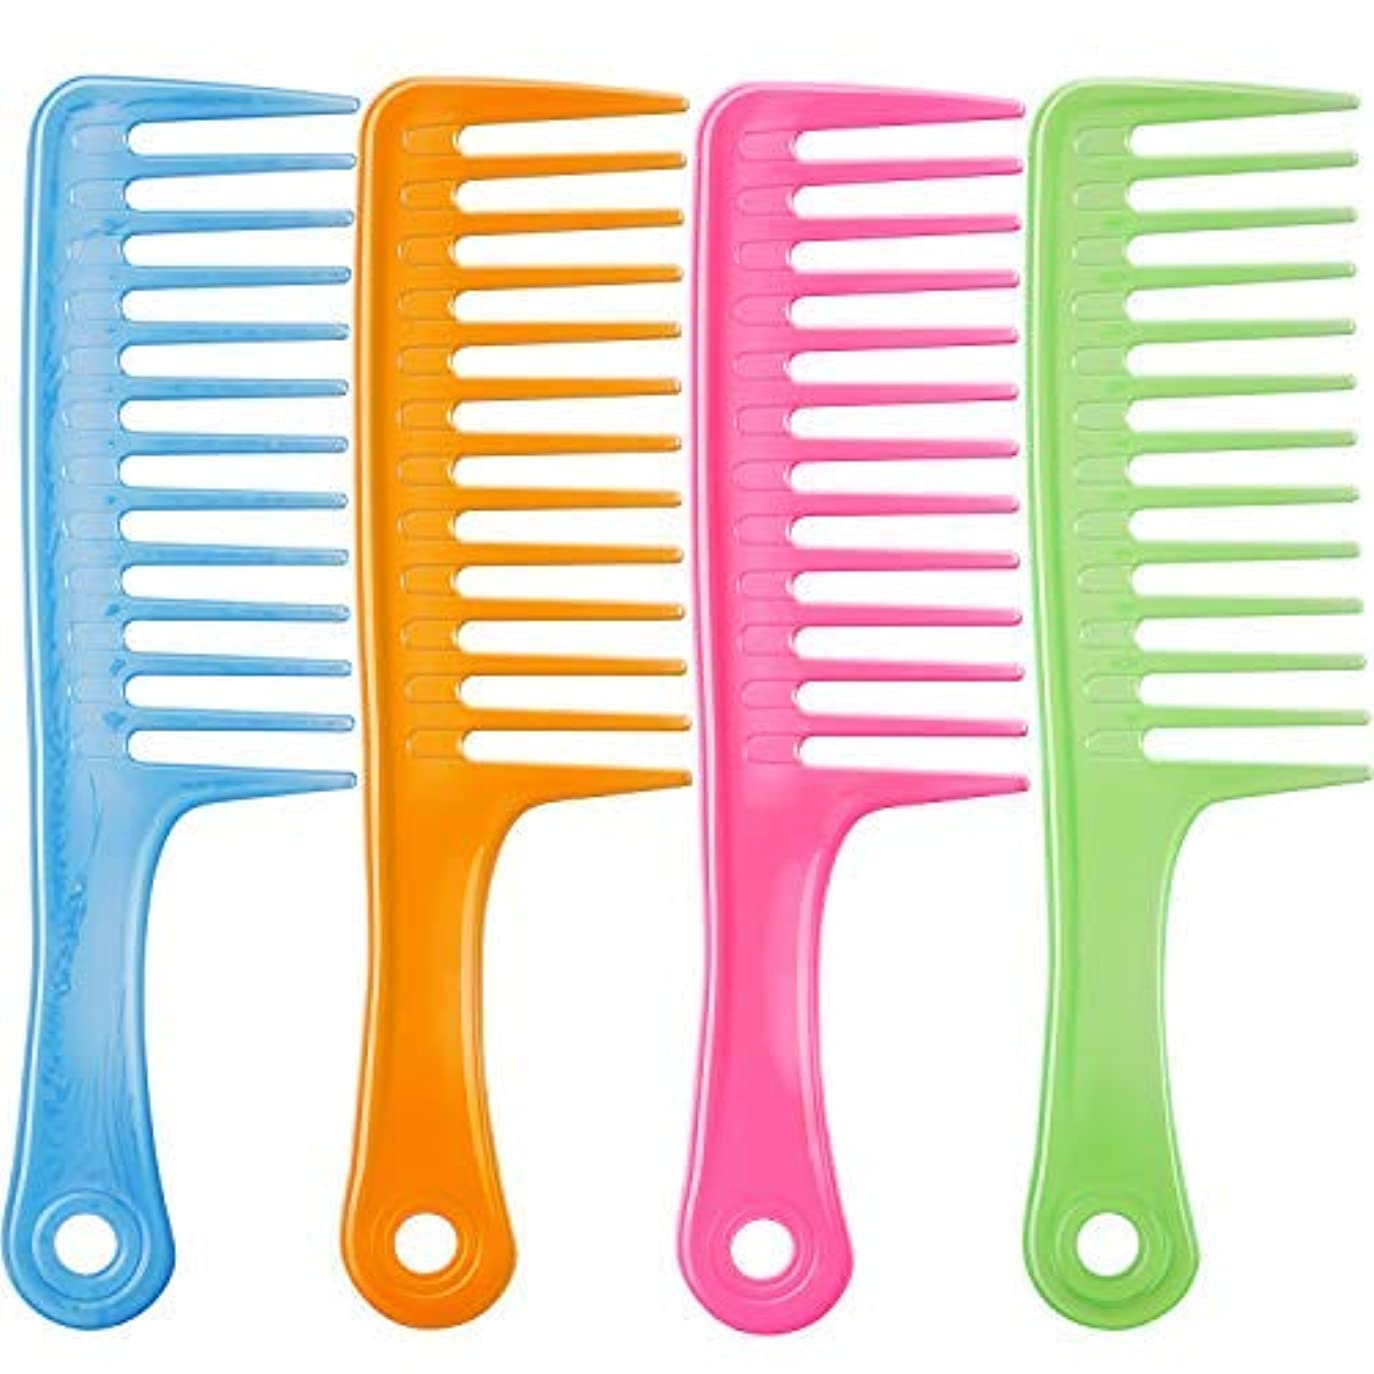 ペット軸ステーキTecUnite 4 Pieces 9 1/2 Inches Anti-static Large Tooth Detangle Comb, Wide Tooth Hair Comb Salon Shampoo Comb for Thick Hair Long Hair and Curly Hair (Mutil Color 3) [並行輸入品]